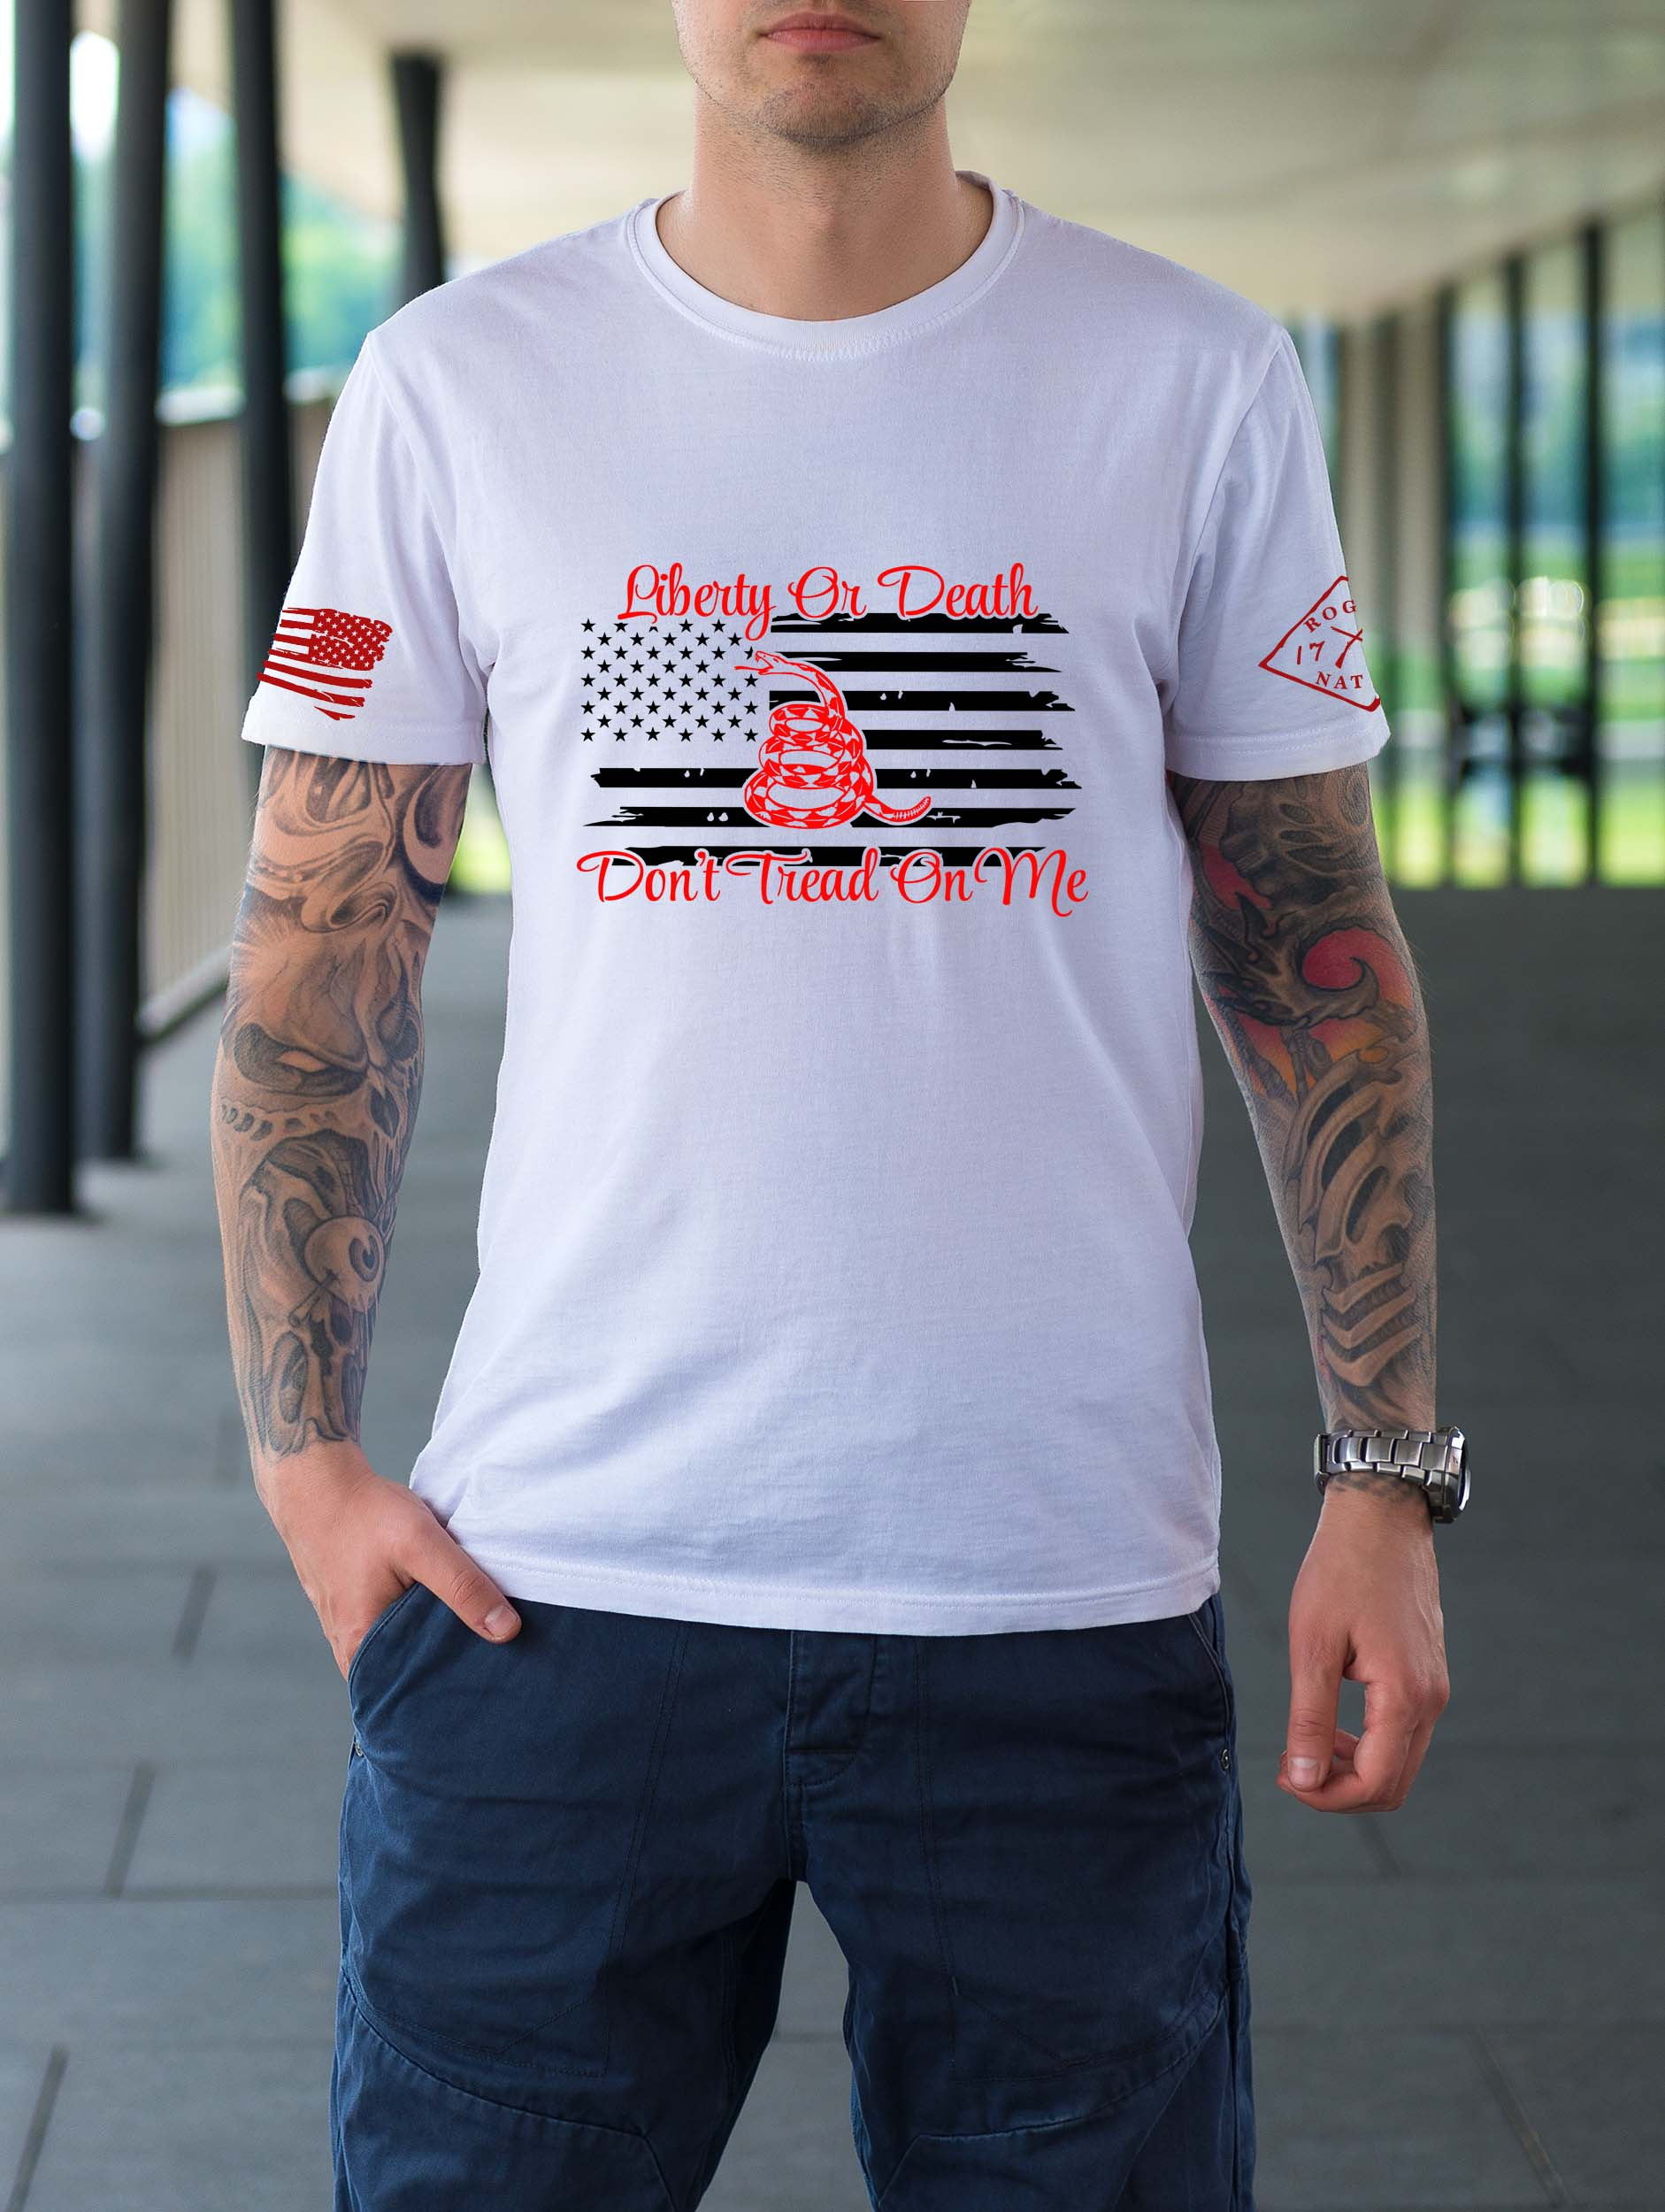 t-shirt with liberty or death on white men's